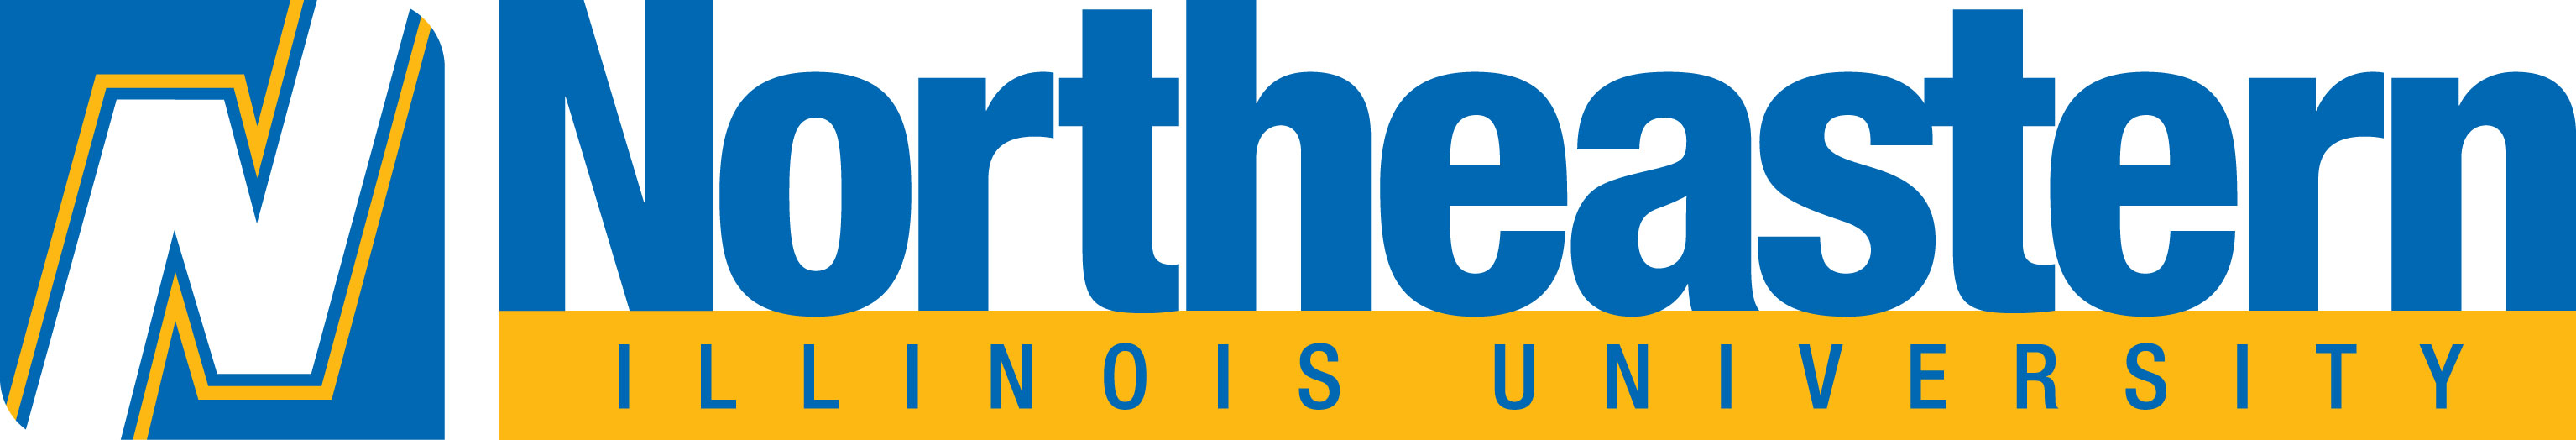 neiu_wordmark_color